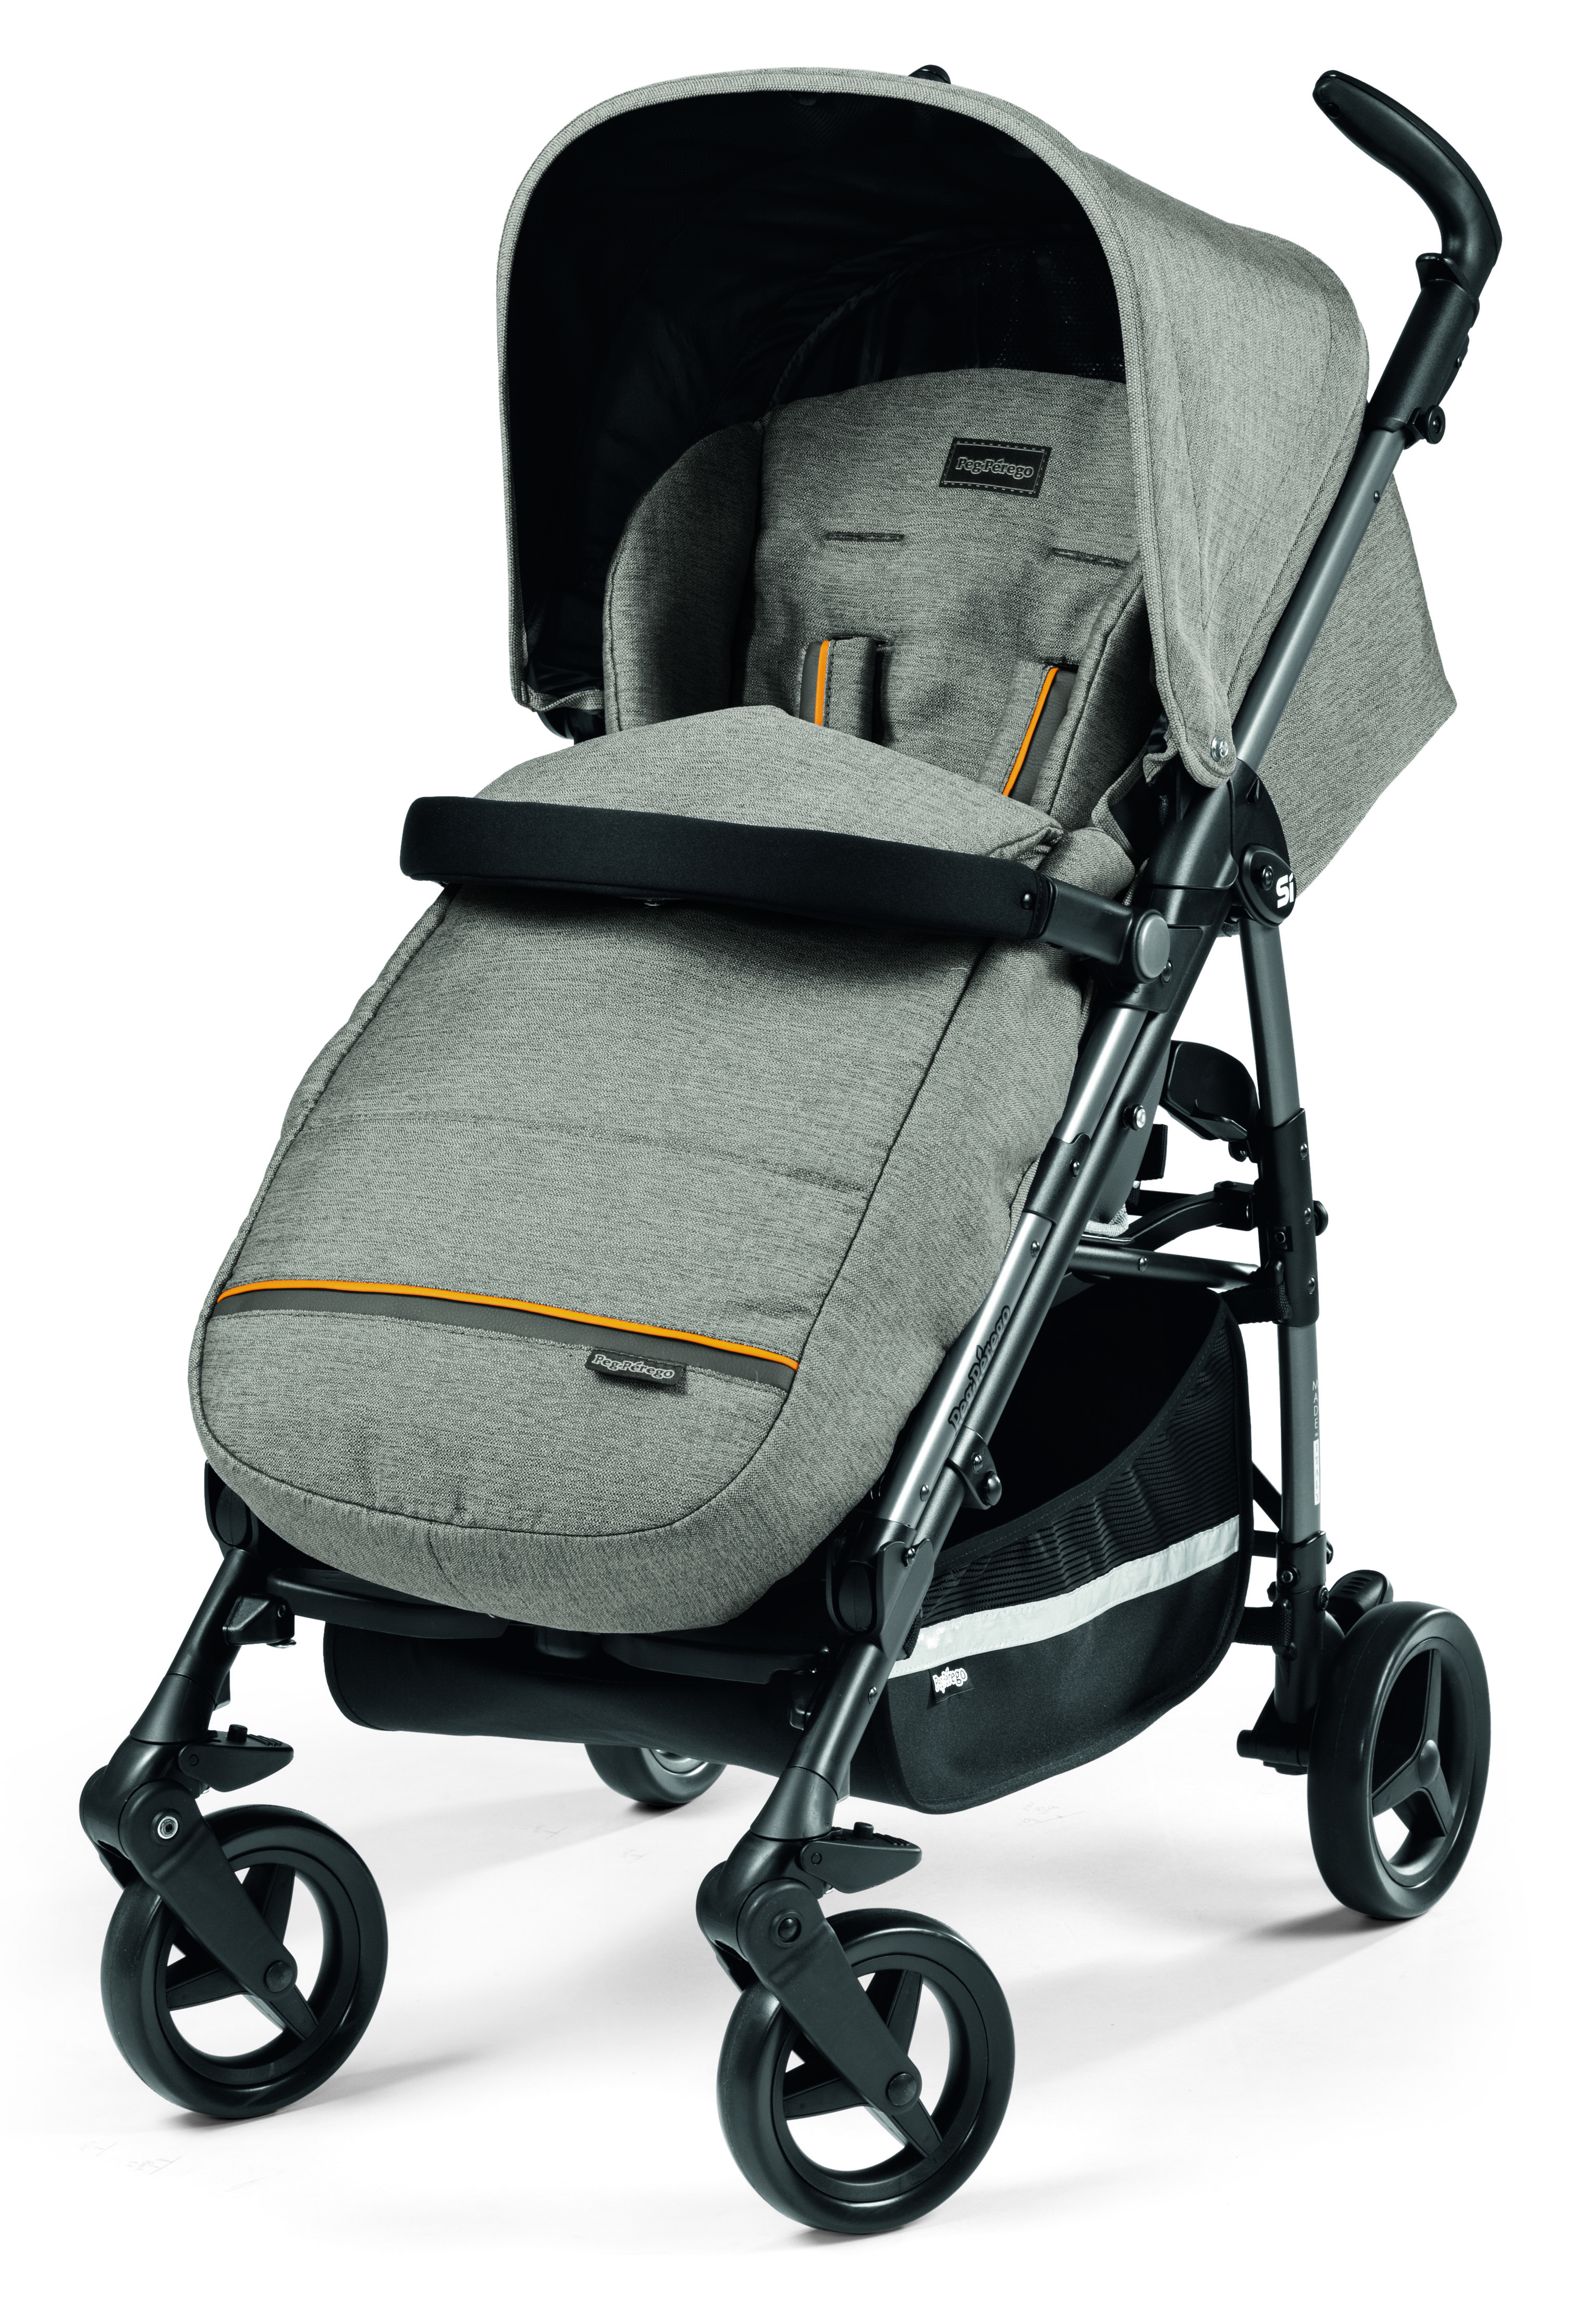 Прогулочная коляска Peg-Perego Si Completo Luxe Grey